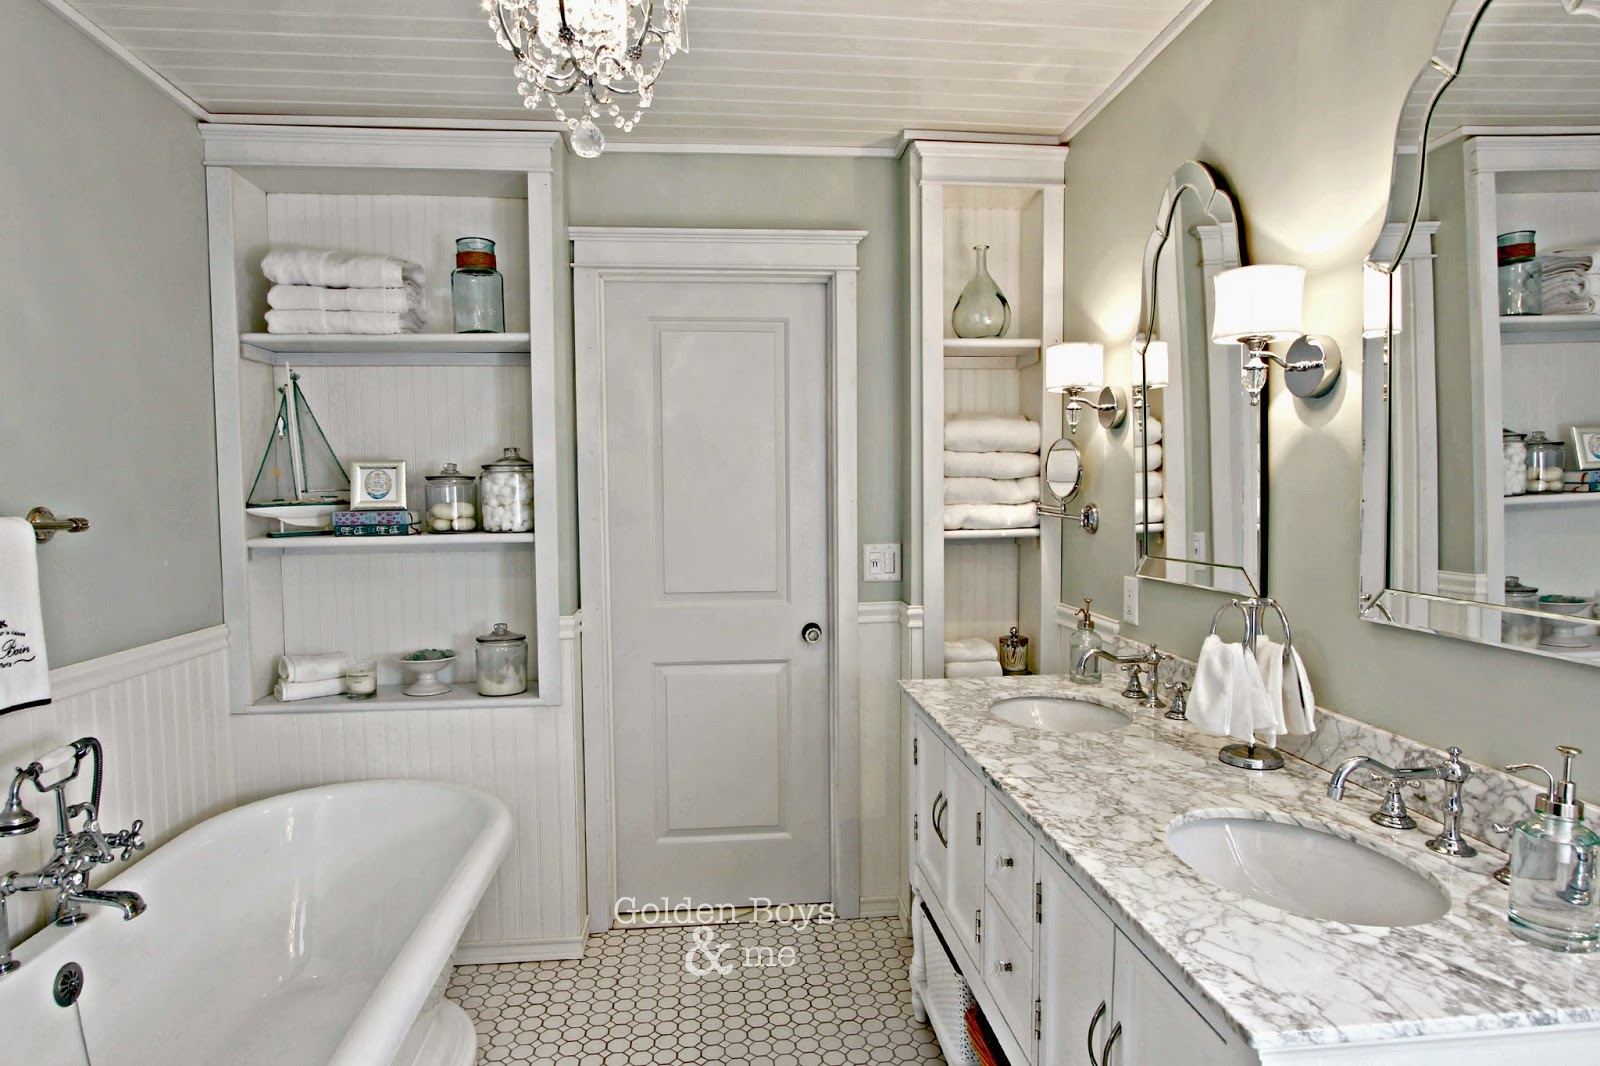 Golden Boys & Me Master Bathroom How I Found My Style Sundays From My Front Porch To Yours